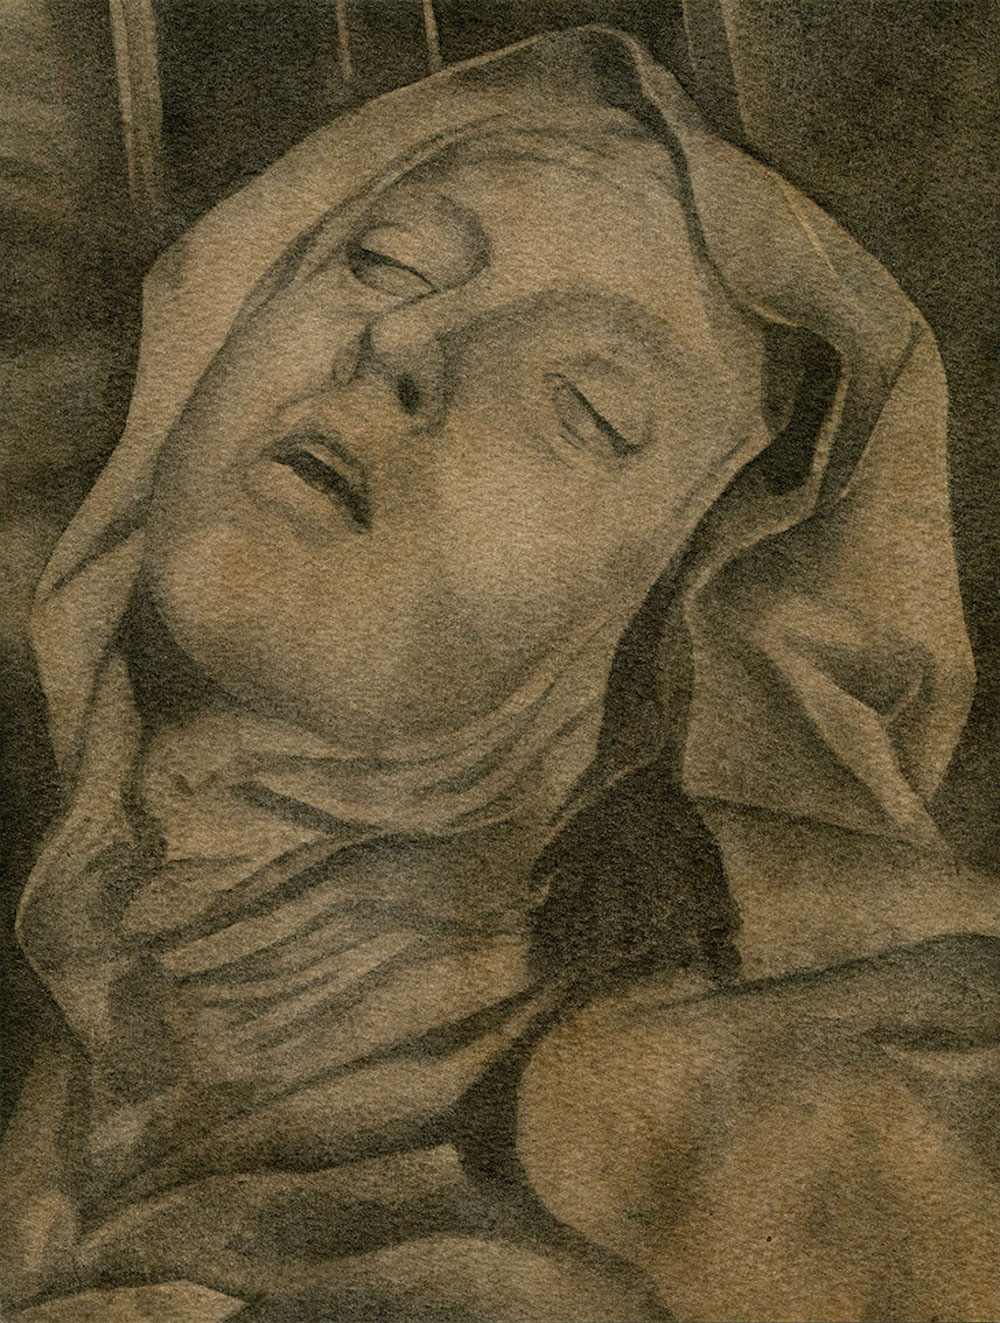 The Ecstasy of Saint Teresa, 2016, watercolour on paper, 24 x 18 cm